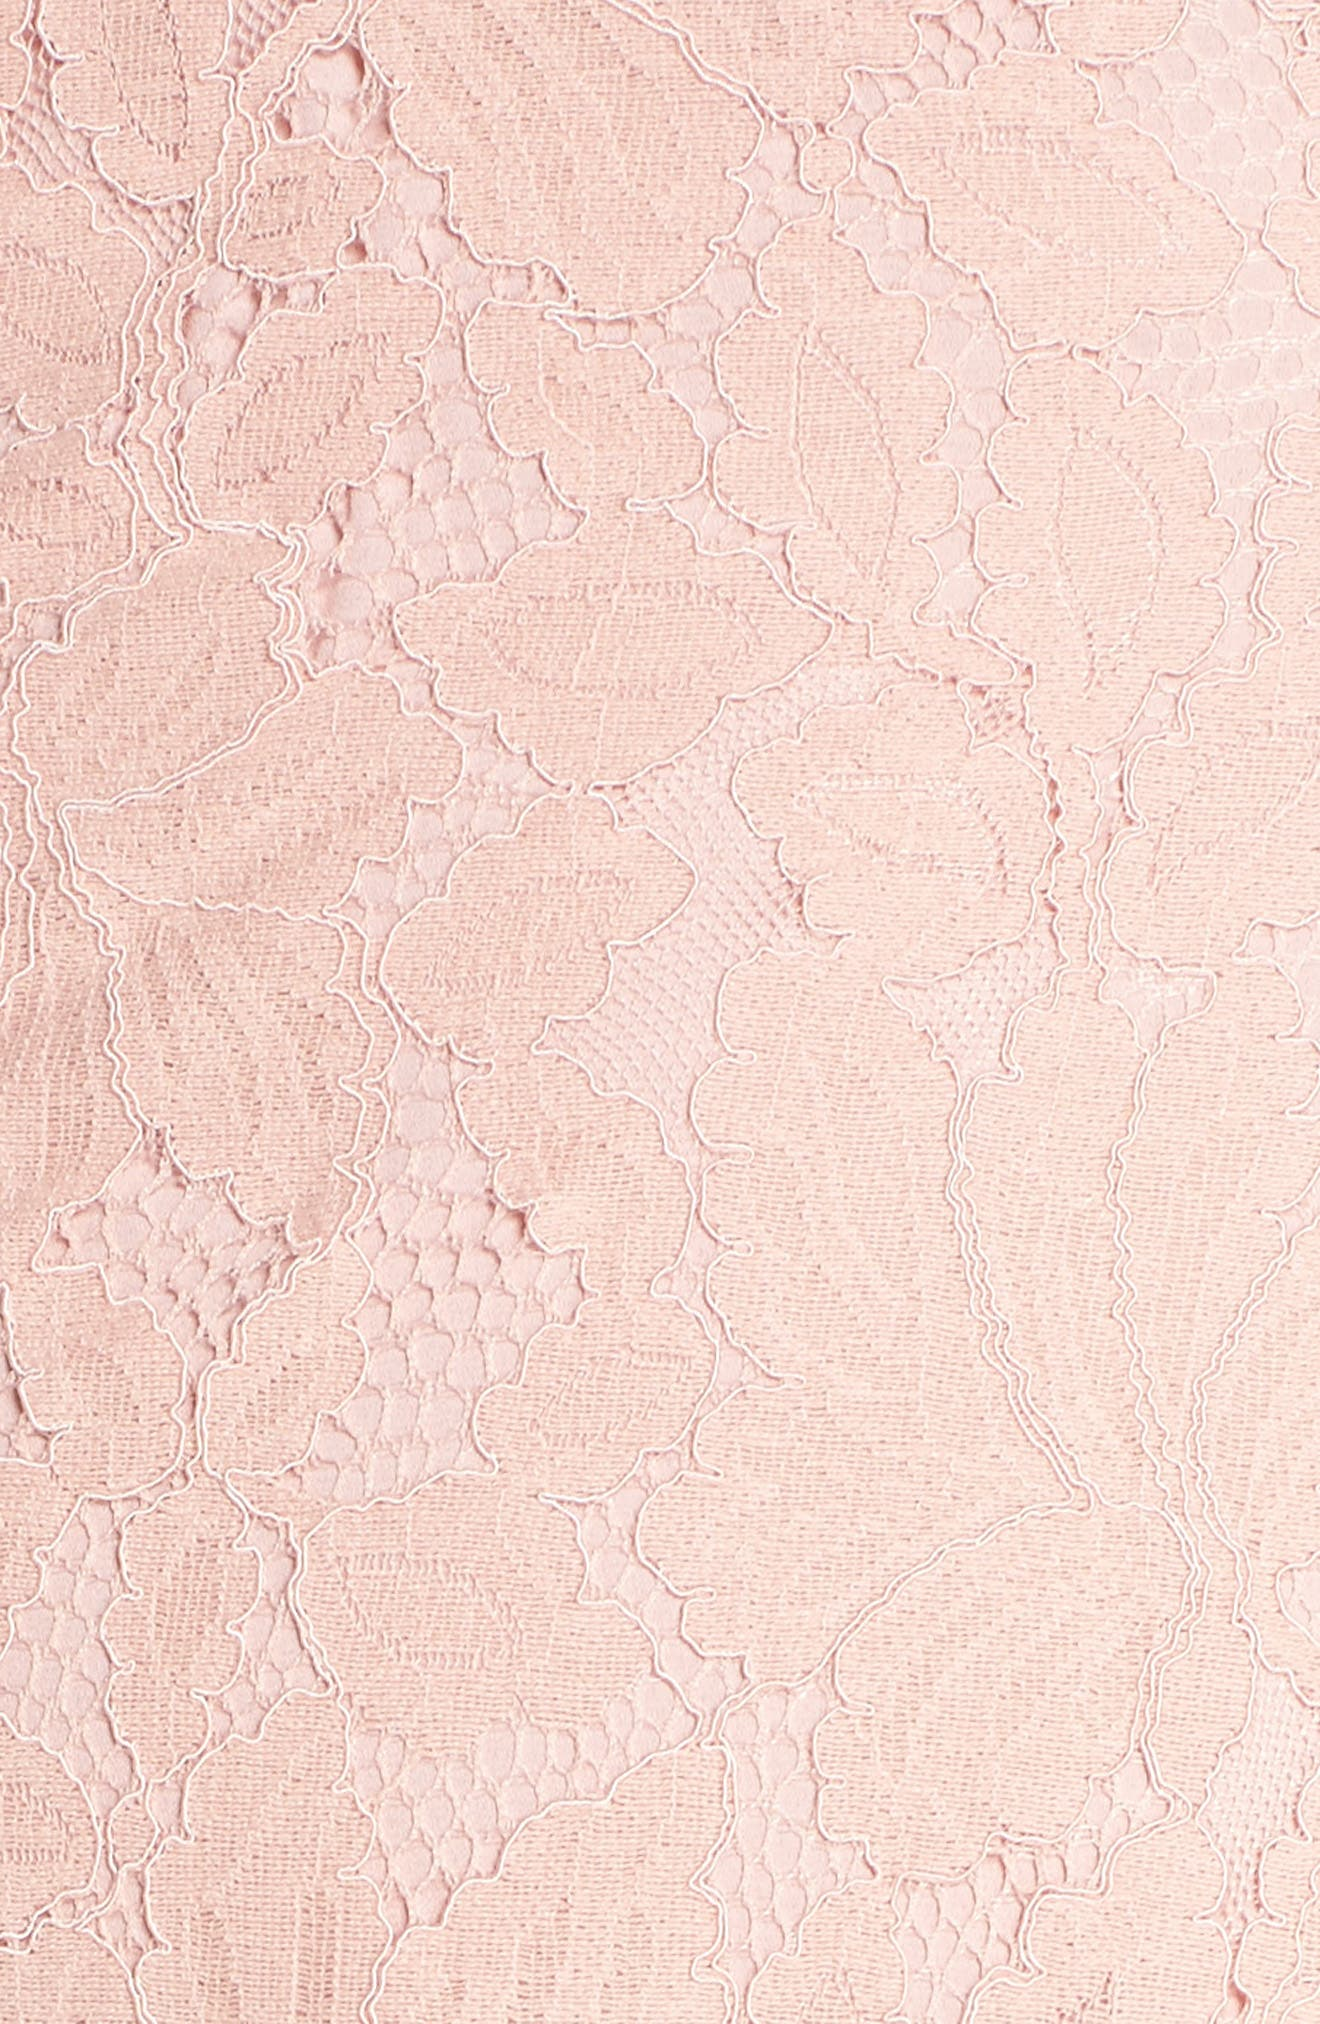 Strapless Lace High/Low Dress,                             Alternate thumbnail 6, color,                             Peach